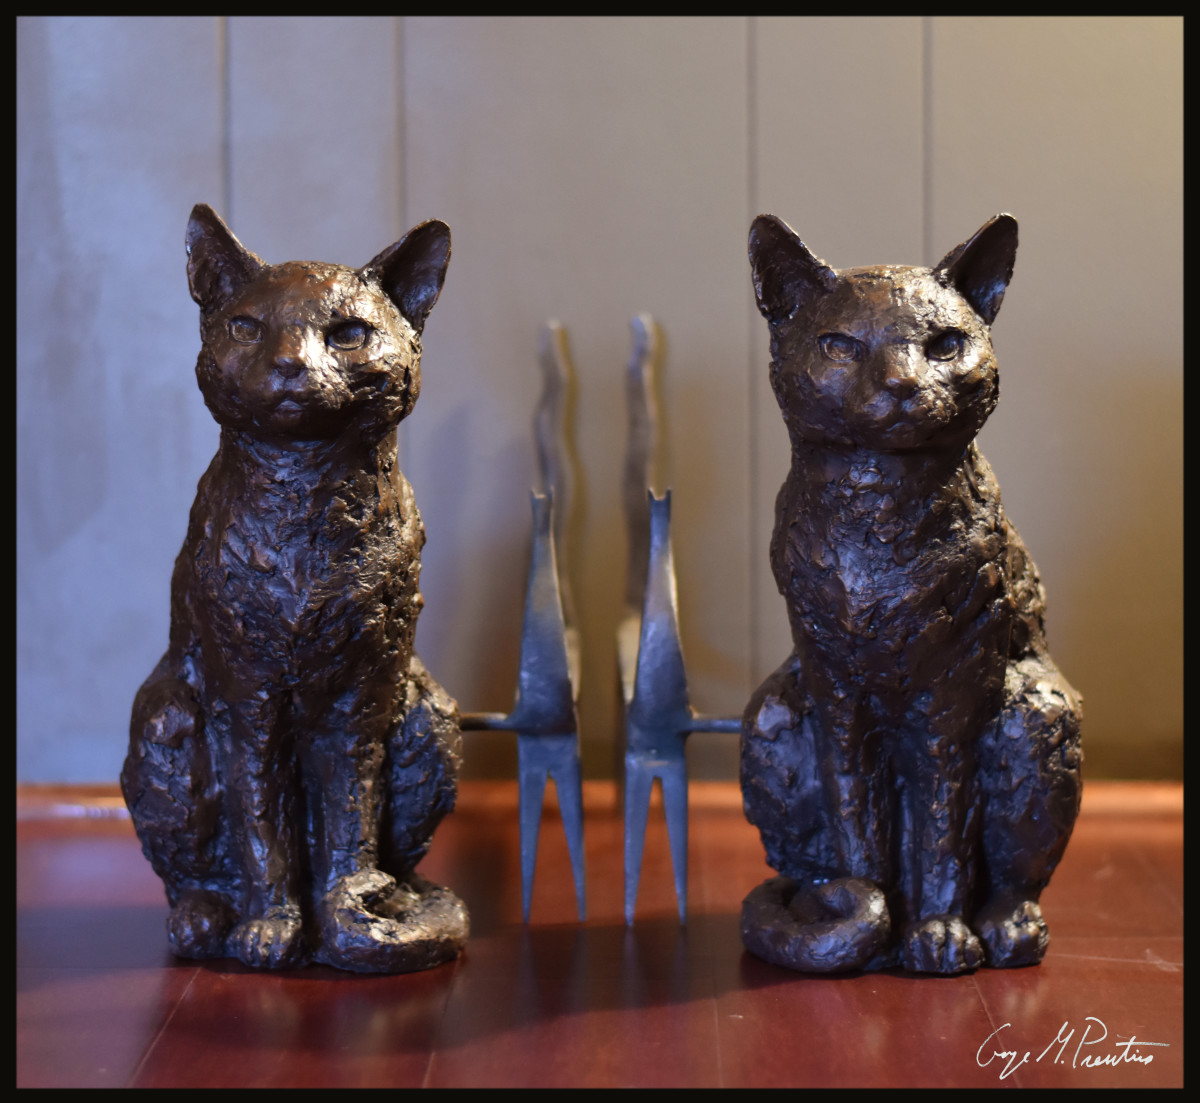 Life Size bronze cats used as andirons in fireplace